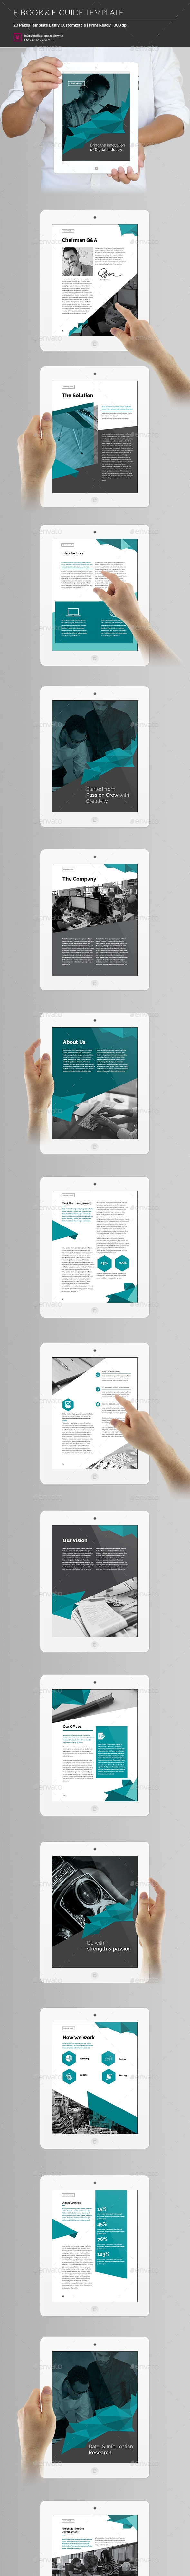 Ebook Eguide template - Digital Books ePublishing